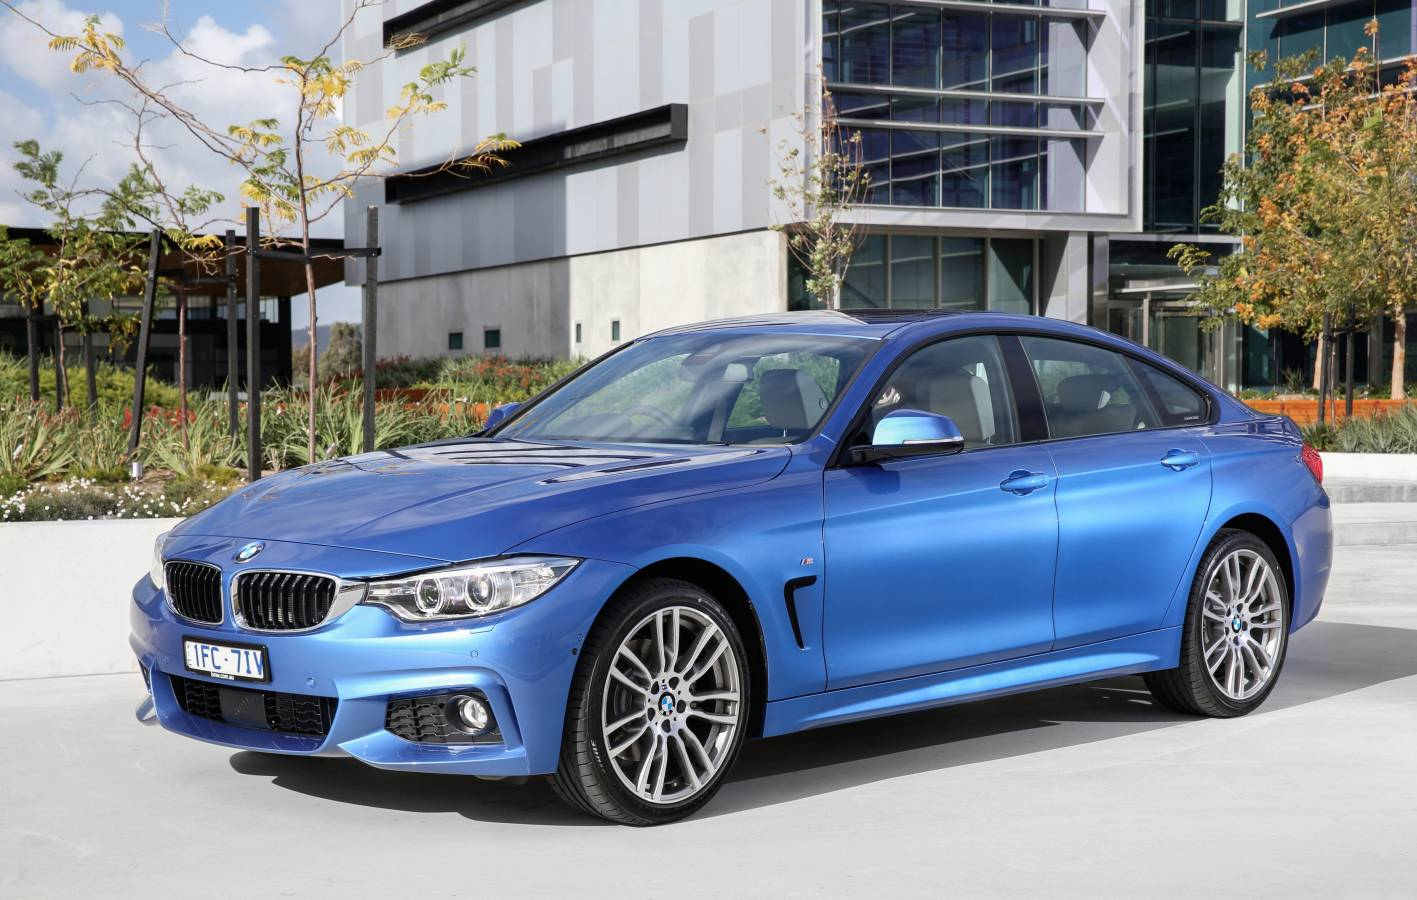 2016 bmw 4 series on sale in australia from 68 900 440i added performancedrive. Black Bedroom Furniture Sets. Home Design Ideas